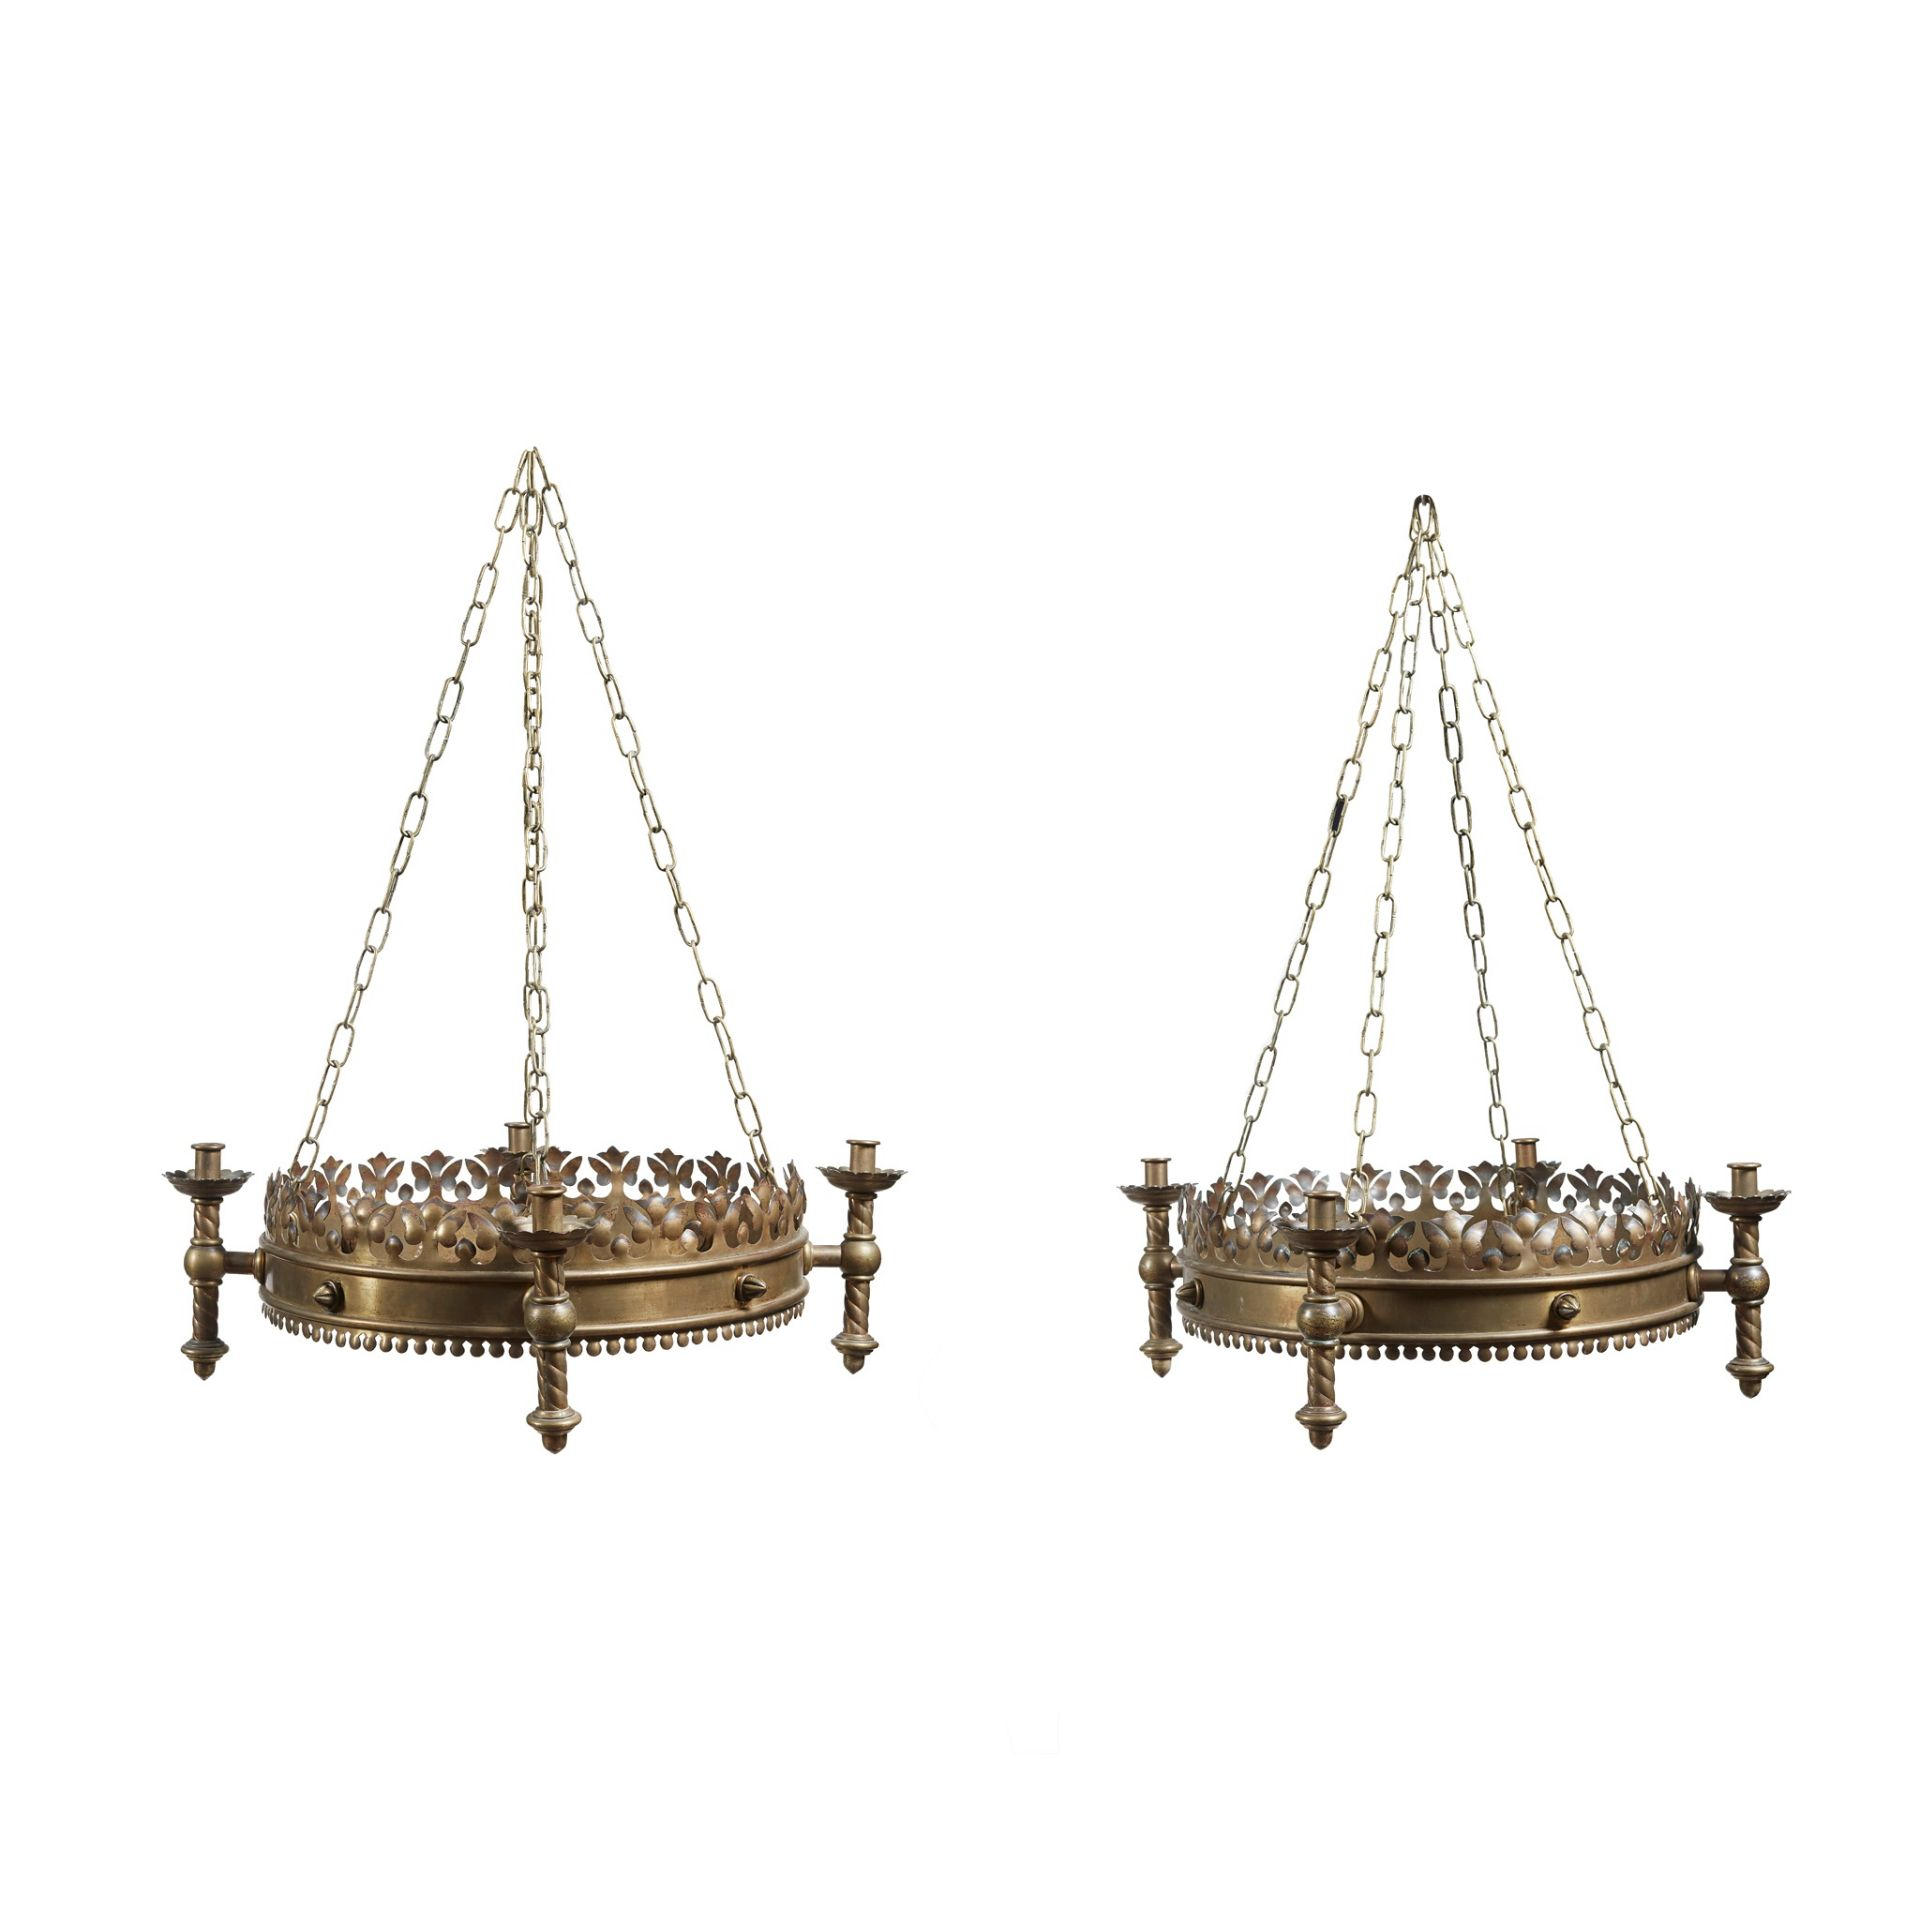 ENGLISH SCHOOL, MANNER OF A.W.N. PUGIN FOR JOHN HARDMAN & CO. PAIR OF GOTHIC REVIVAL CHANDELIERS, - Image 2 of 2